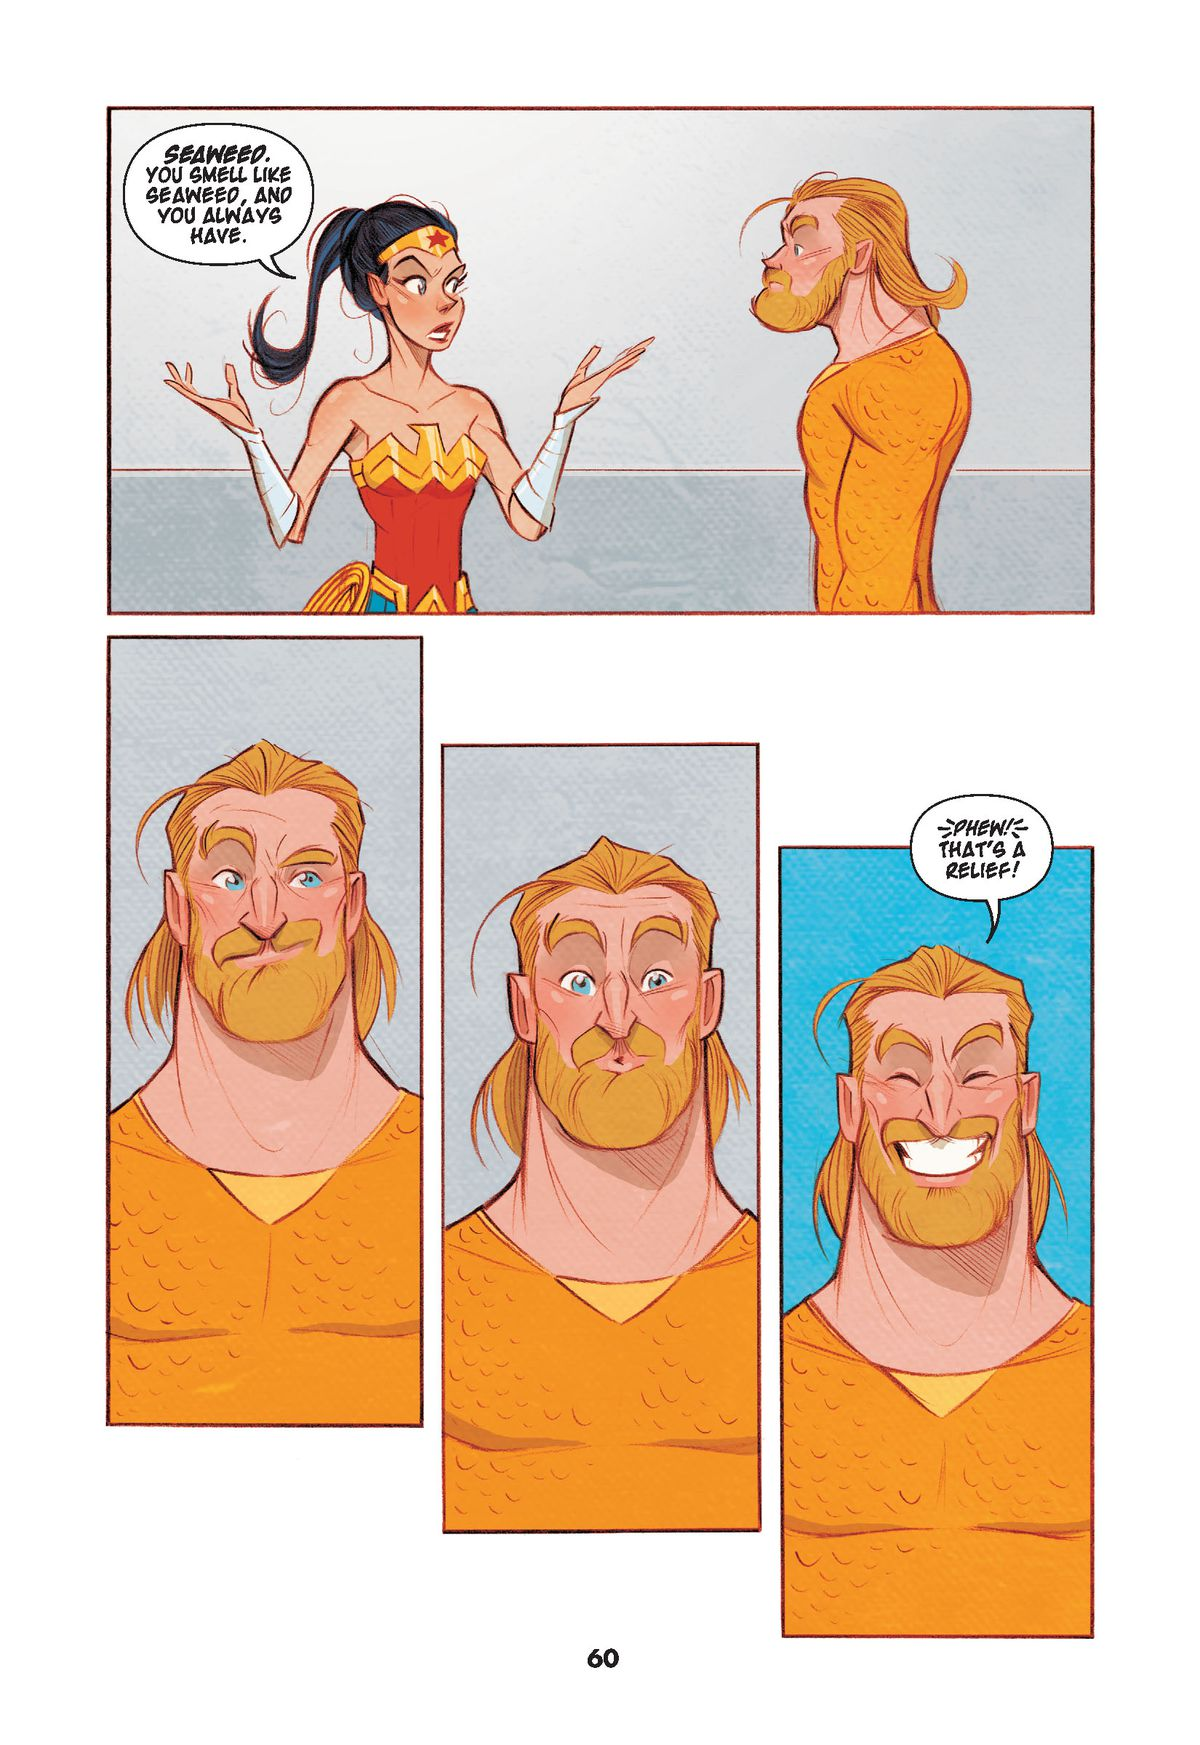 Wonder Woman tells Aquaman that he smells like seaweed, and always has. He seem relieved, in Dear Justice League, DC Comics (2019).